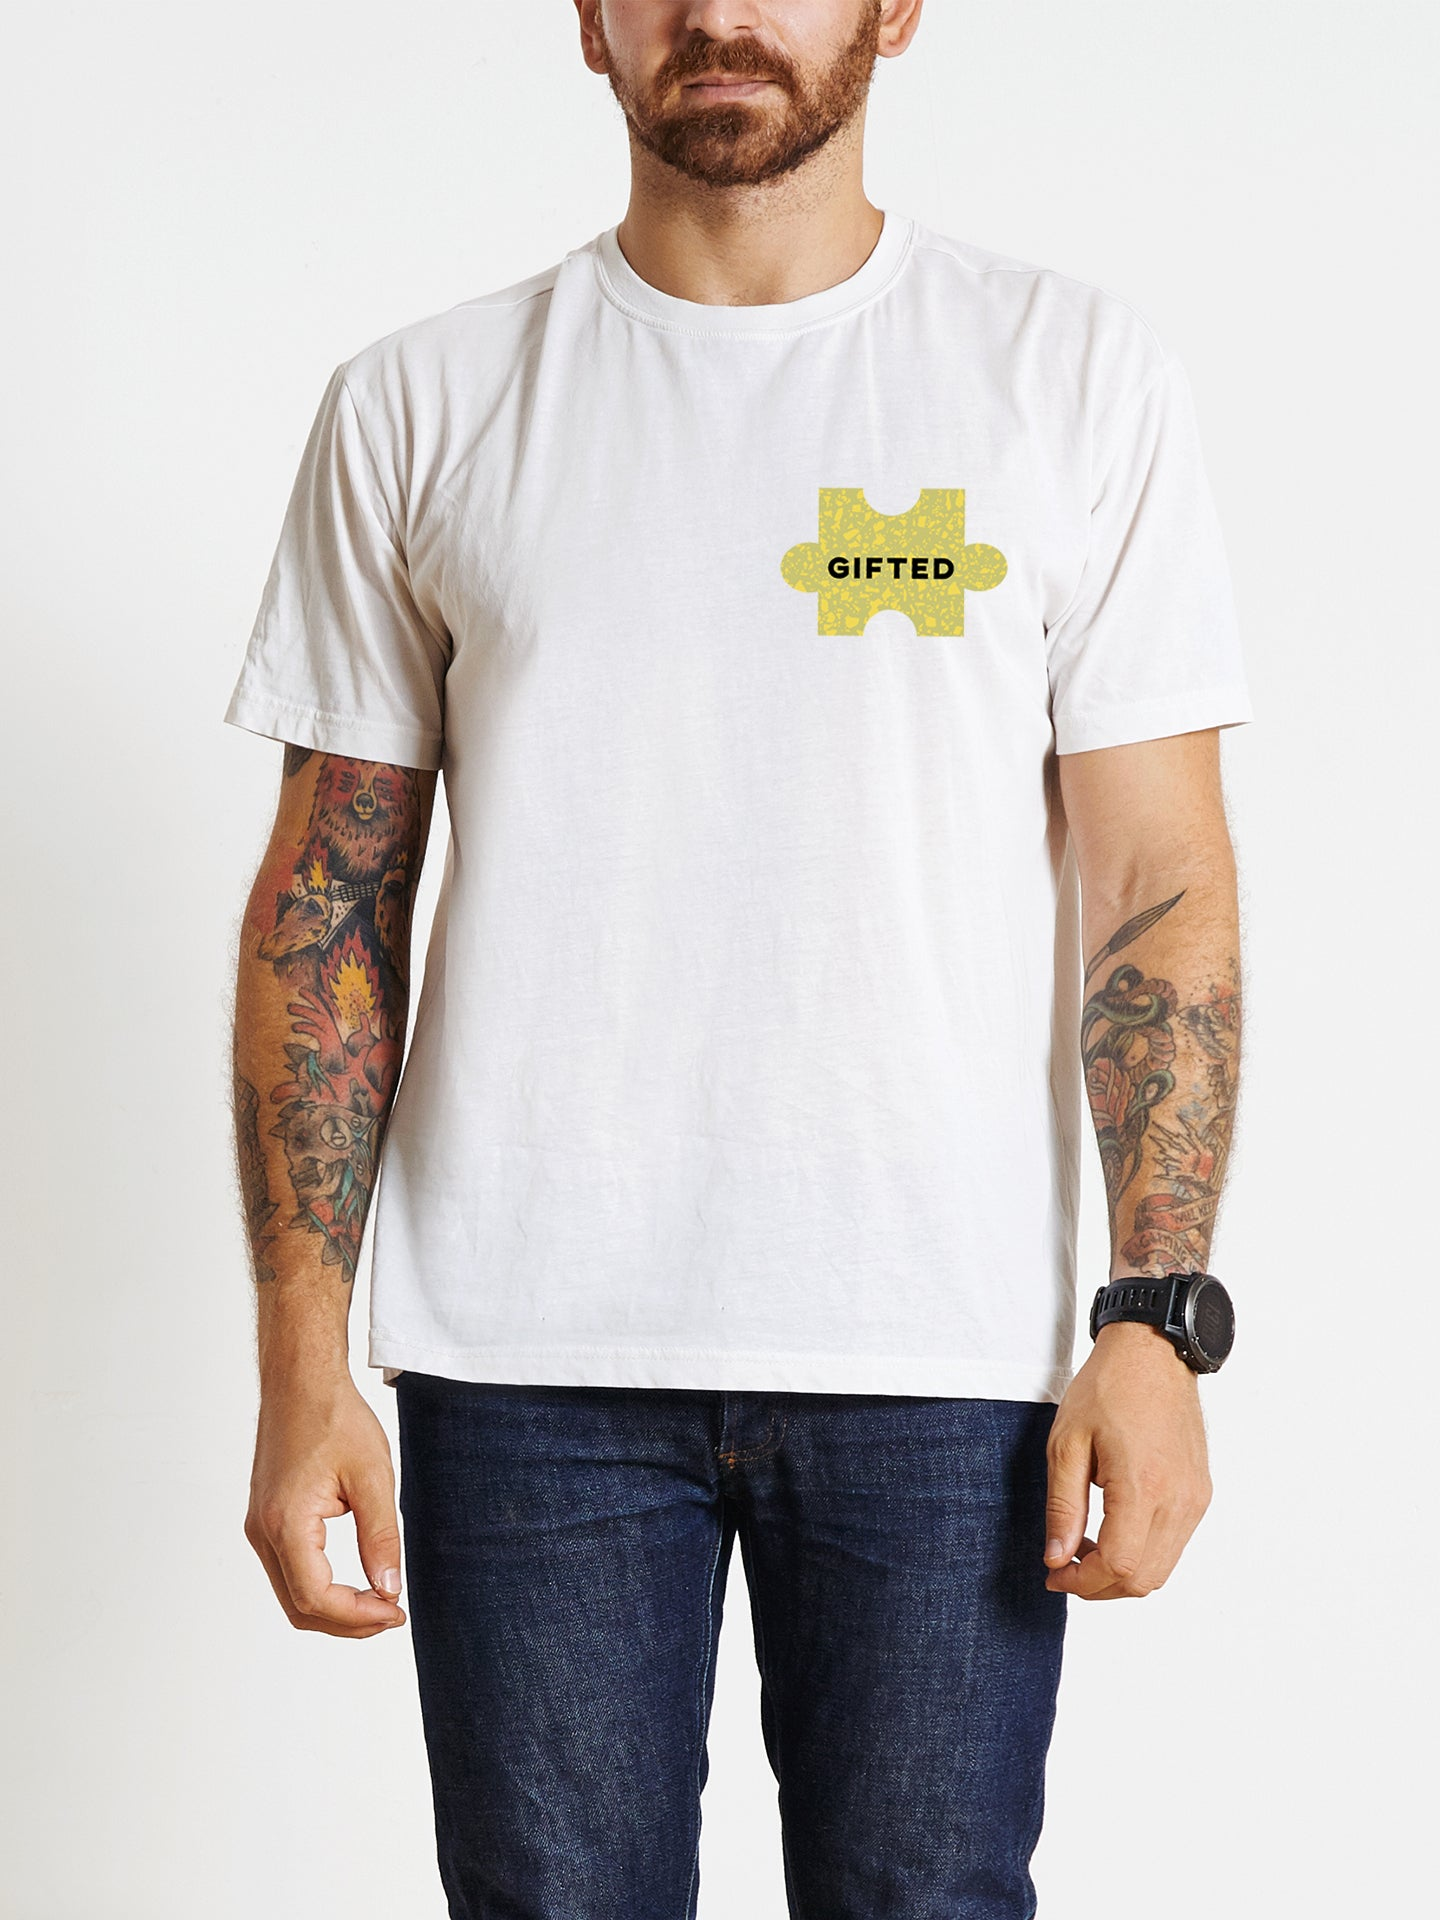 The Power of Words - Men's Tee - Puzzle Pieces - GIFTED